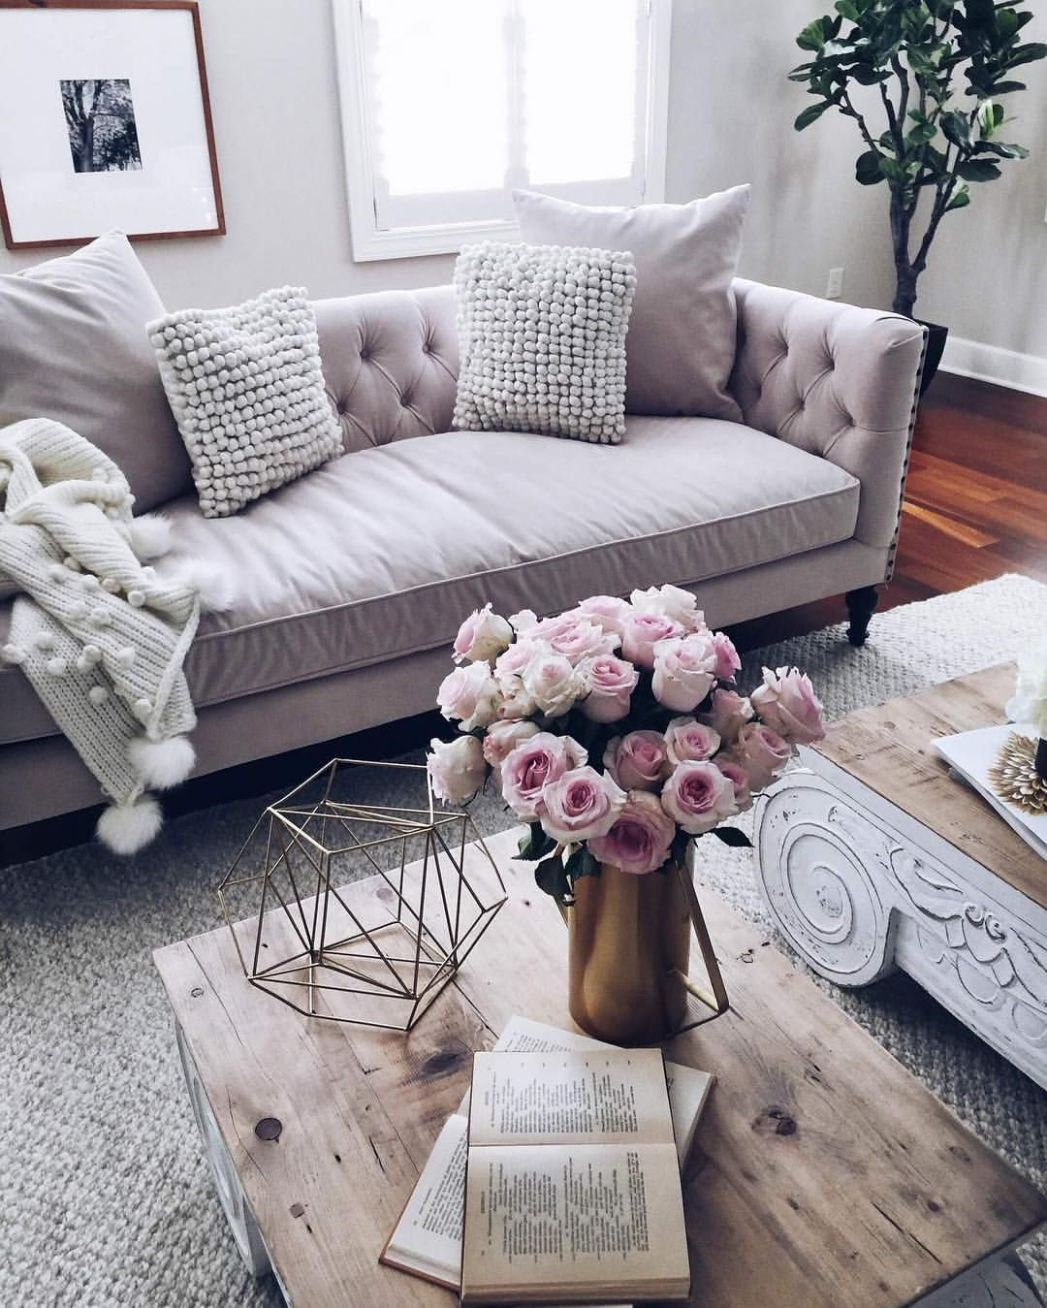 Are you looking to make your apartment look bigger and more ..